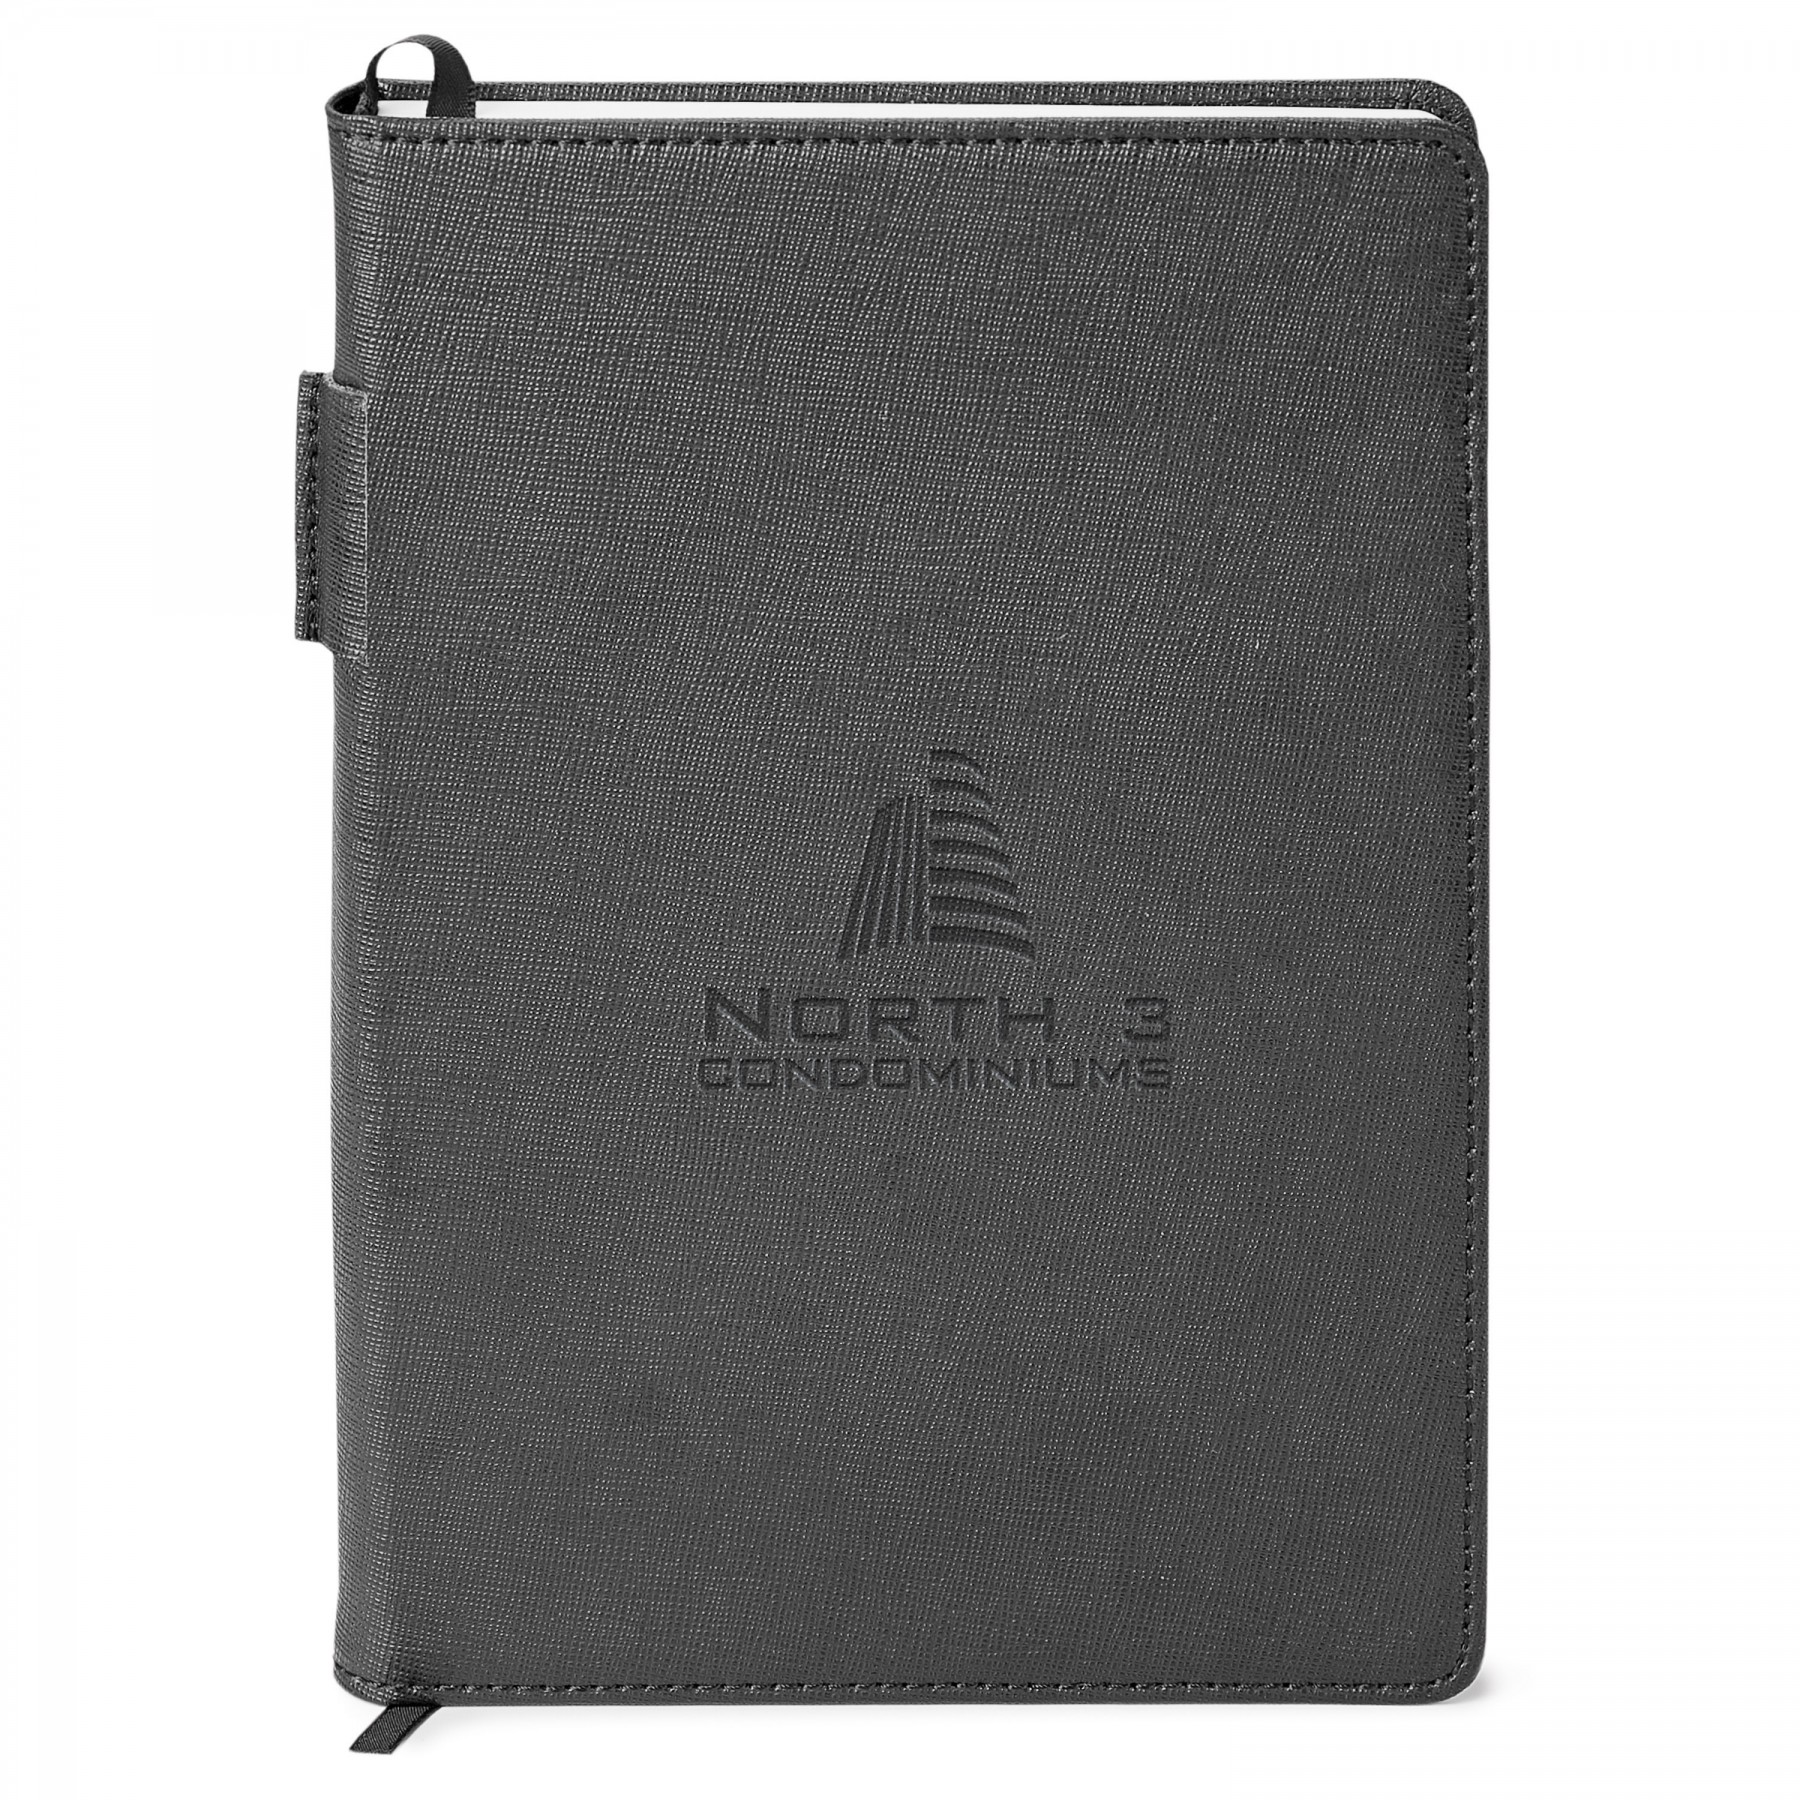 Genuine Leather Non-Refillable Journal - Debossed Imprint (ST4660)